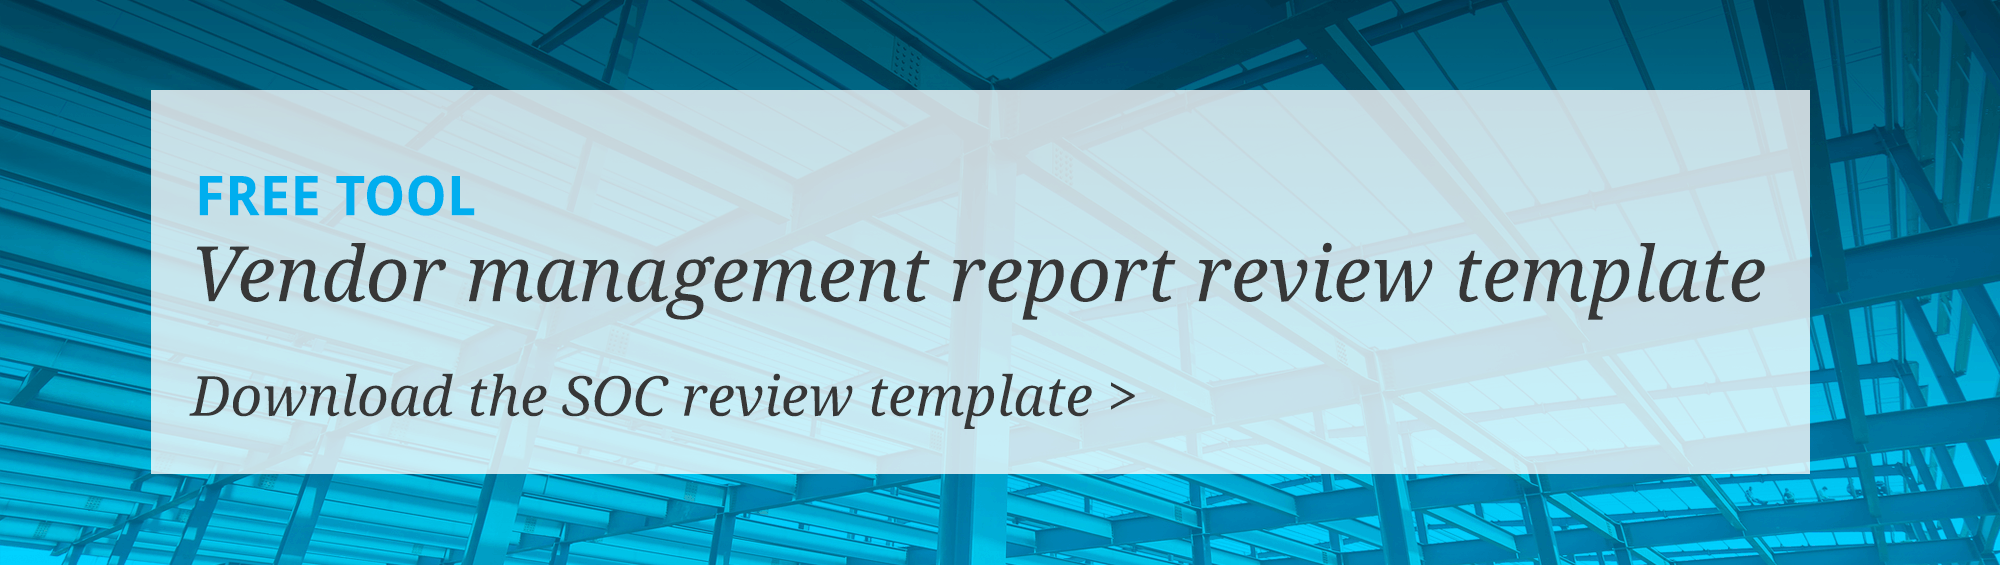 Download the SOC review template